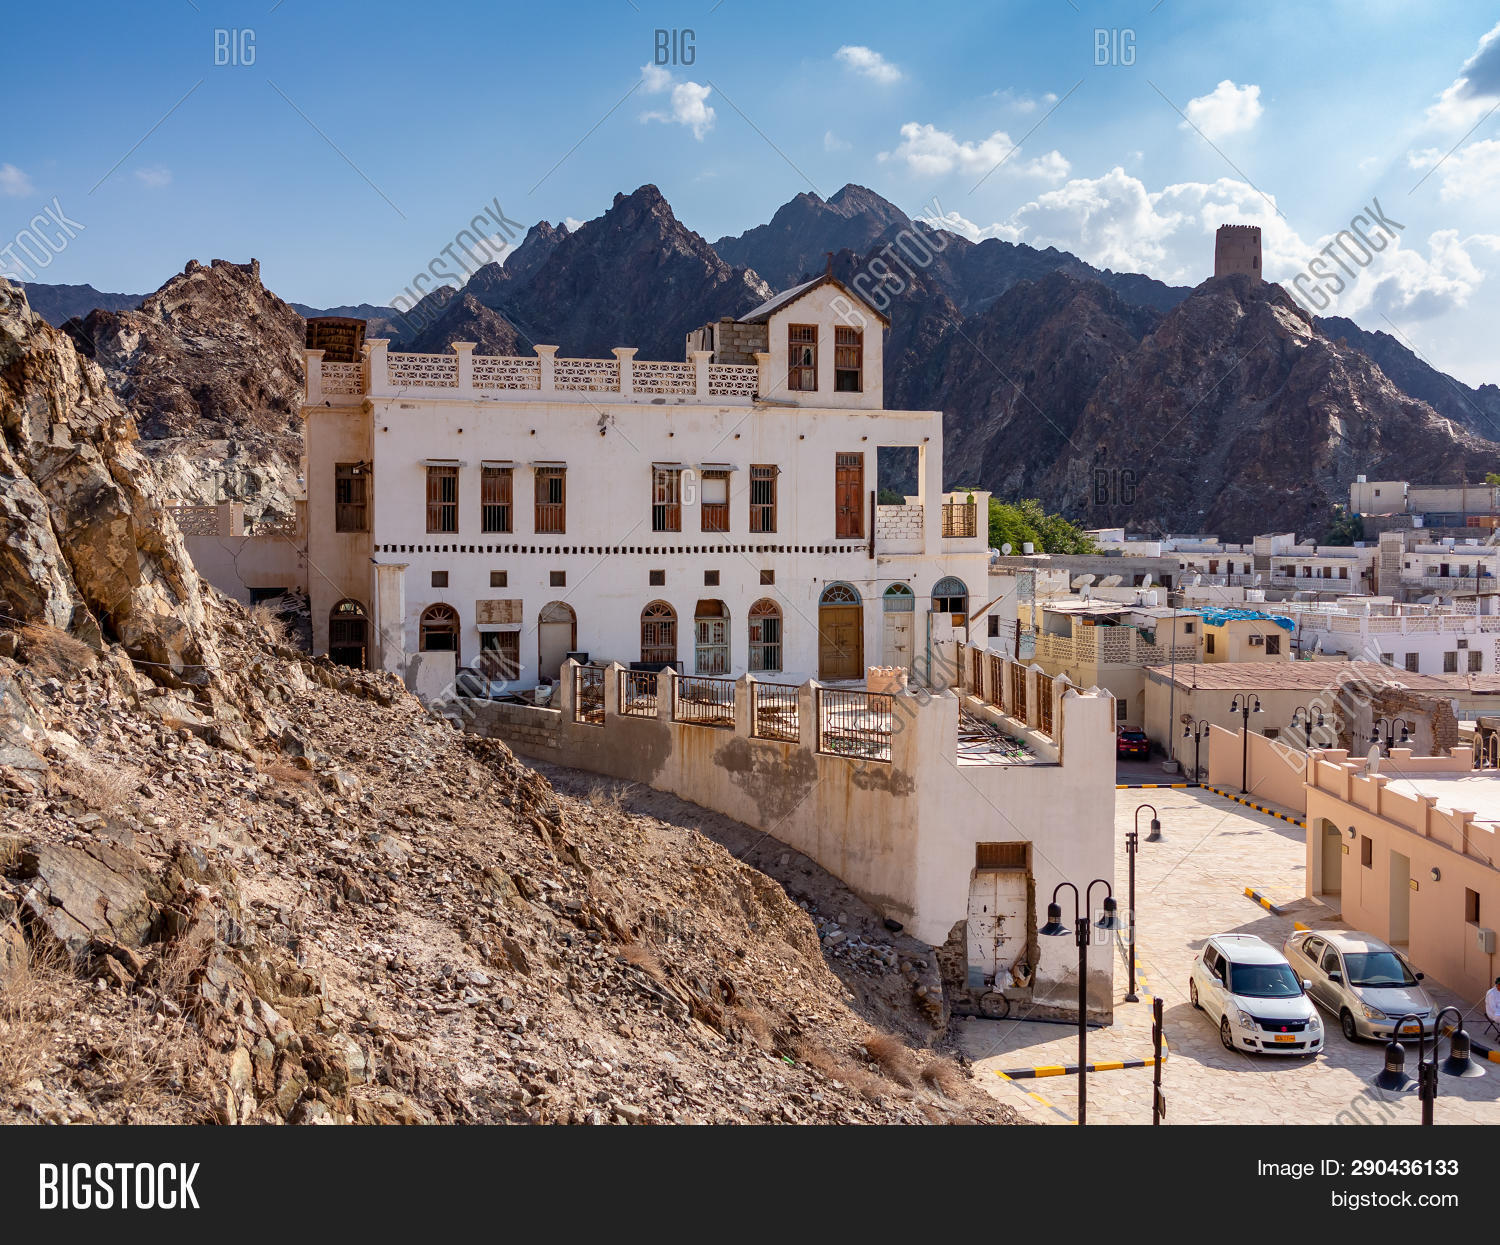 Muscat, Oman - Image & Photo (Free Trial) | Bigstock